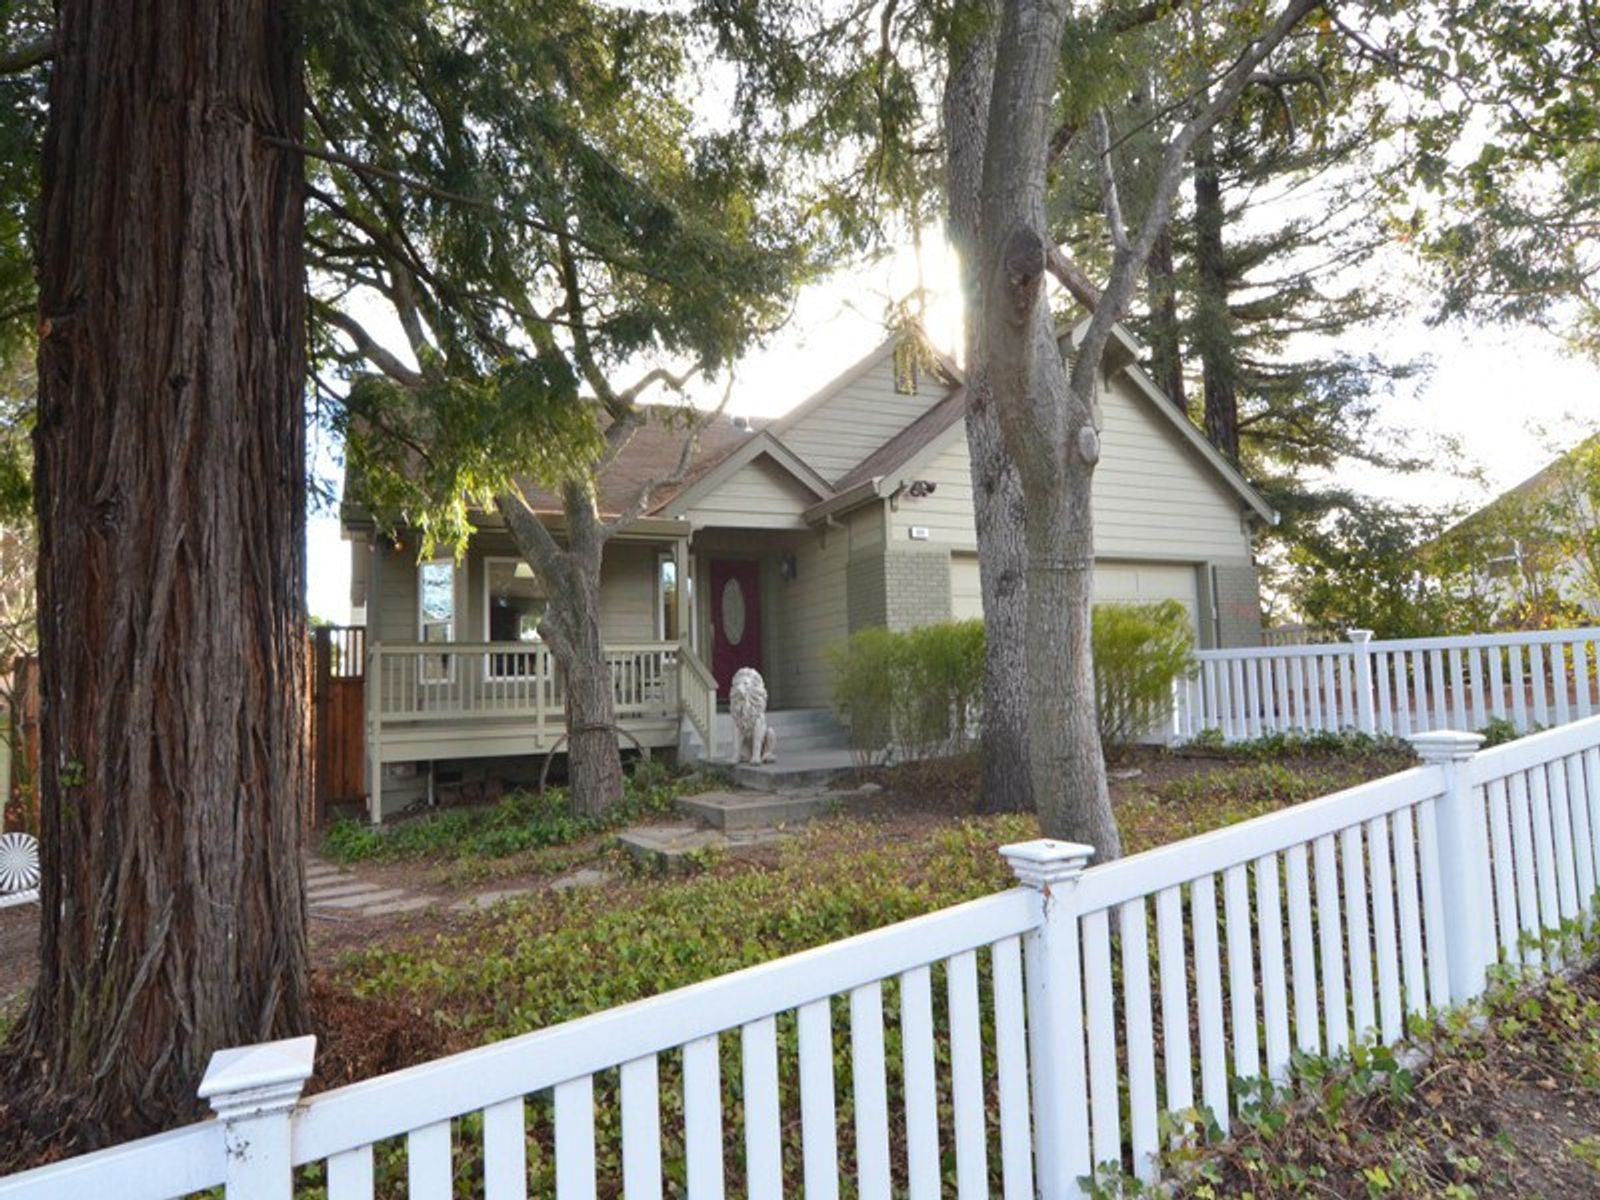 Petaluma Gem Westside, Petaluma CA Single Family Home - Sonoma - Napa Real Estate